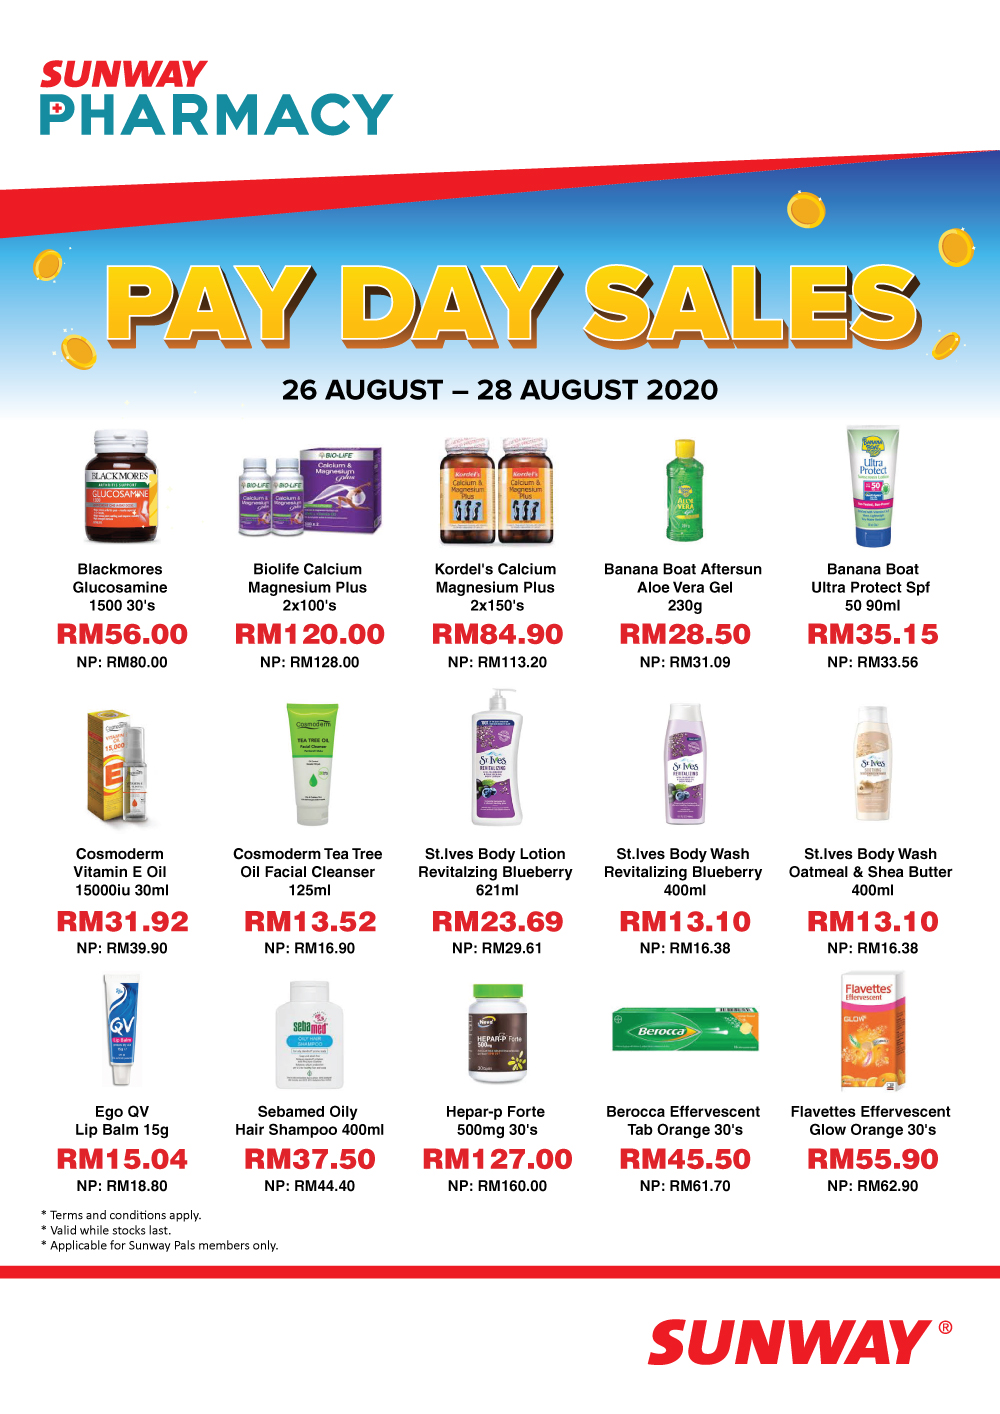 Pay Day Sales